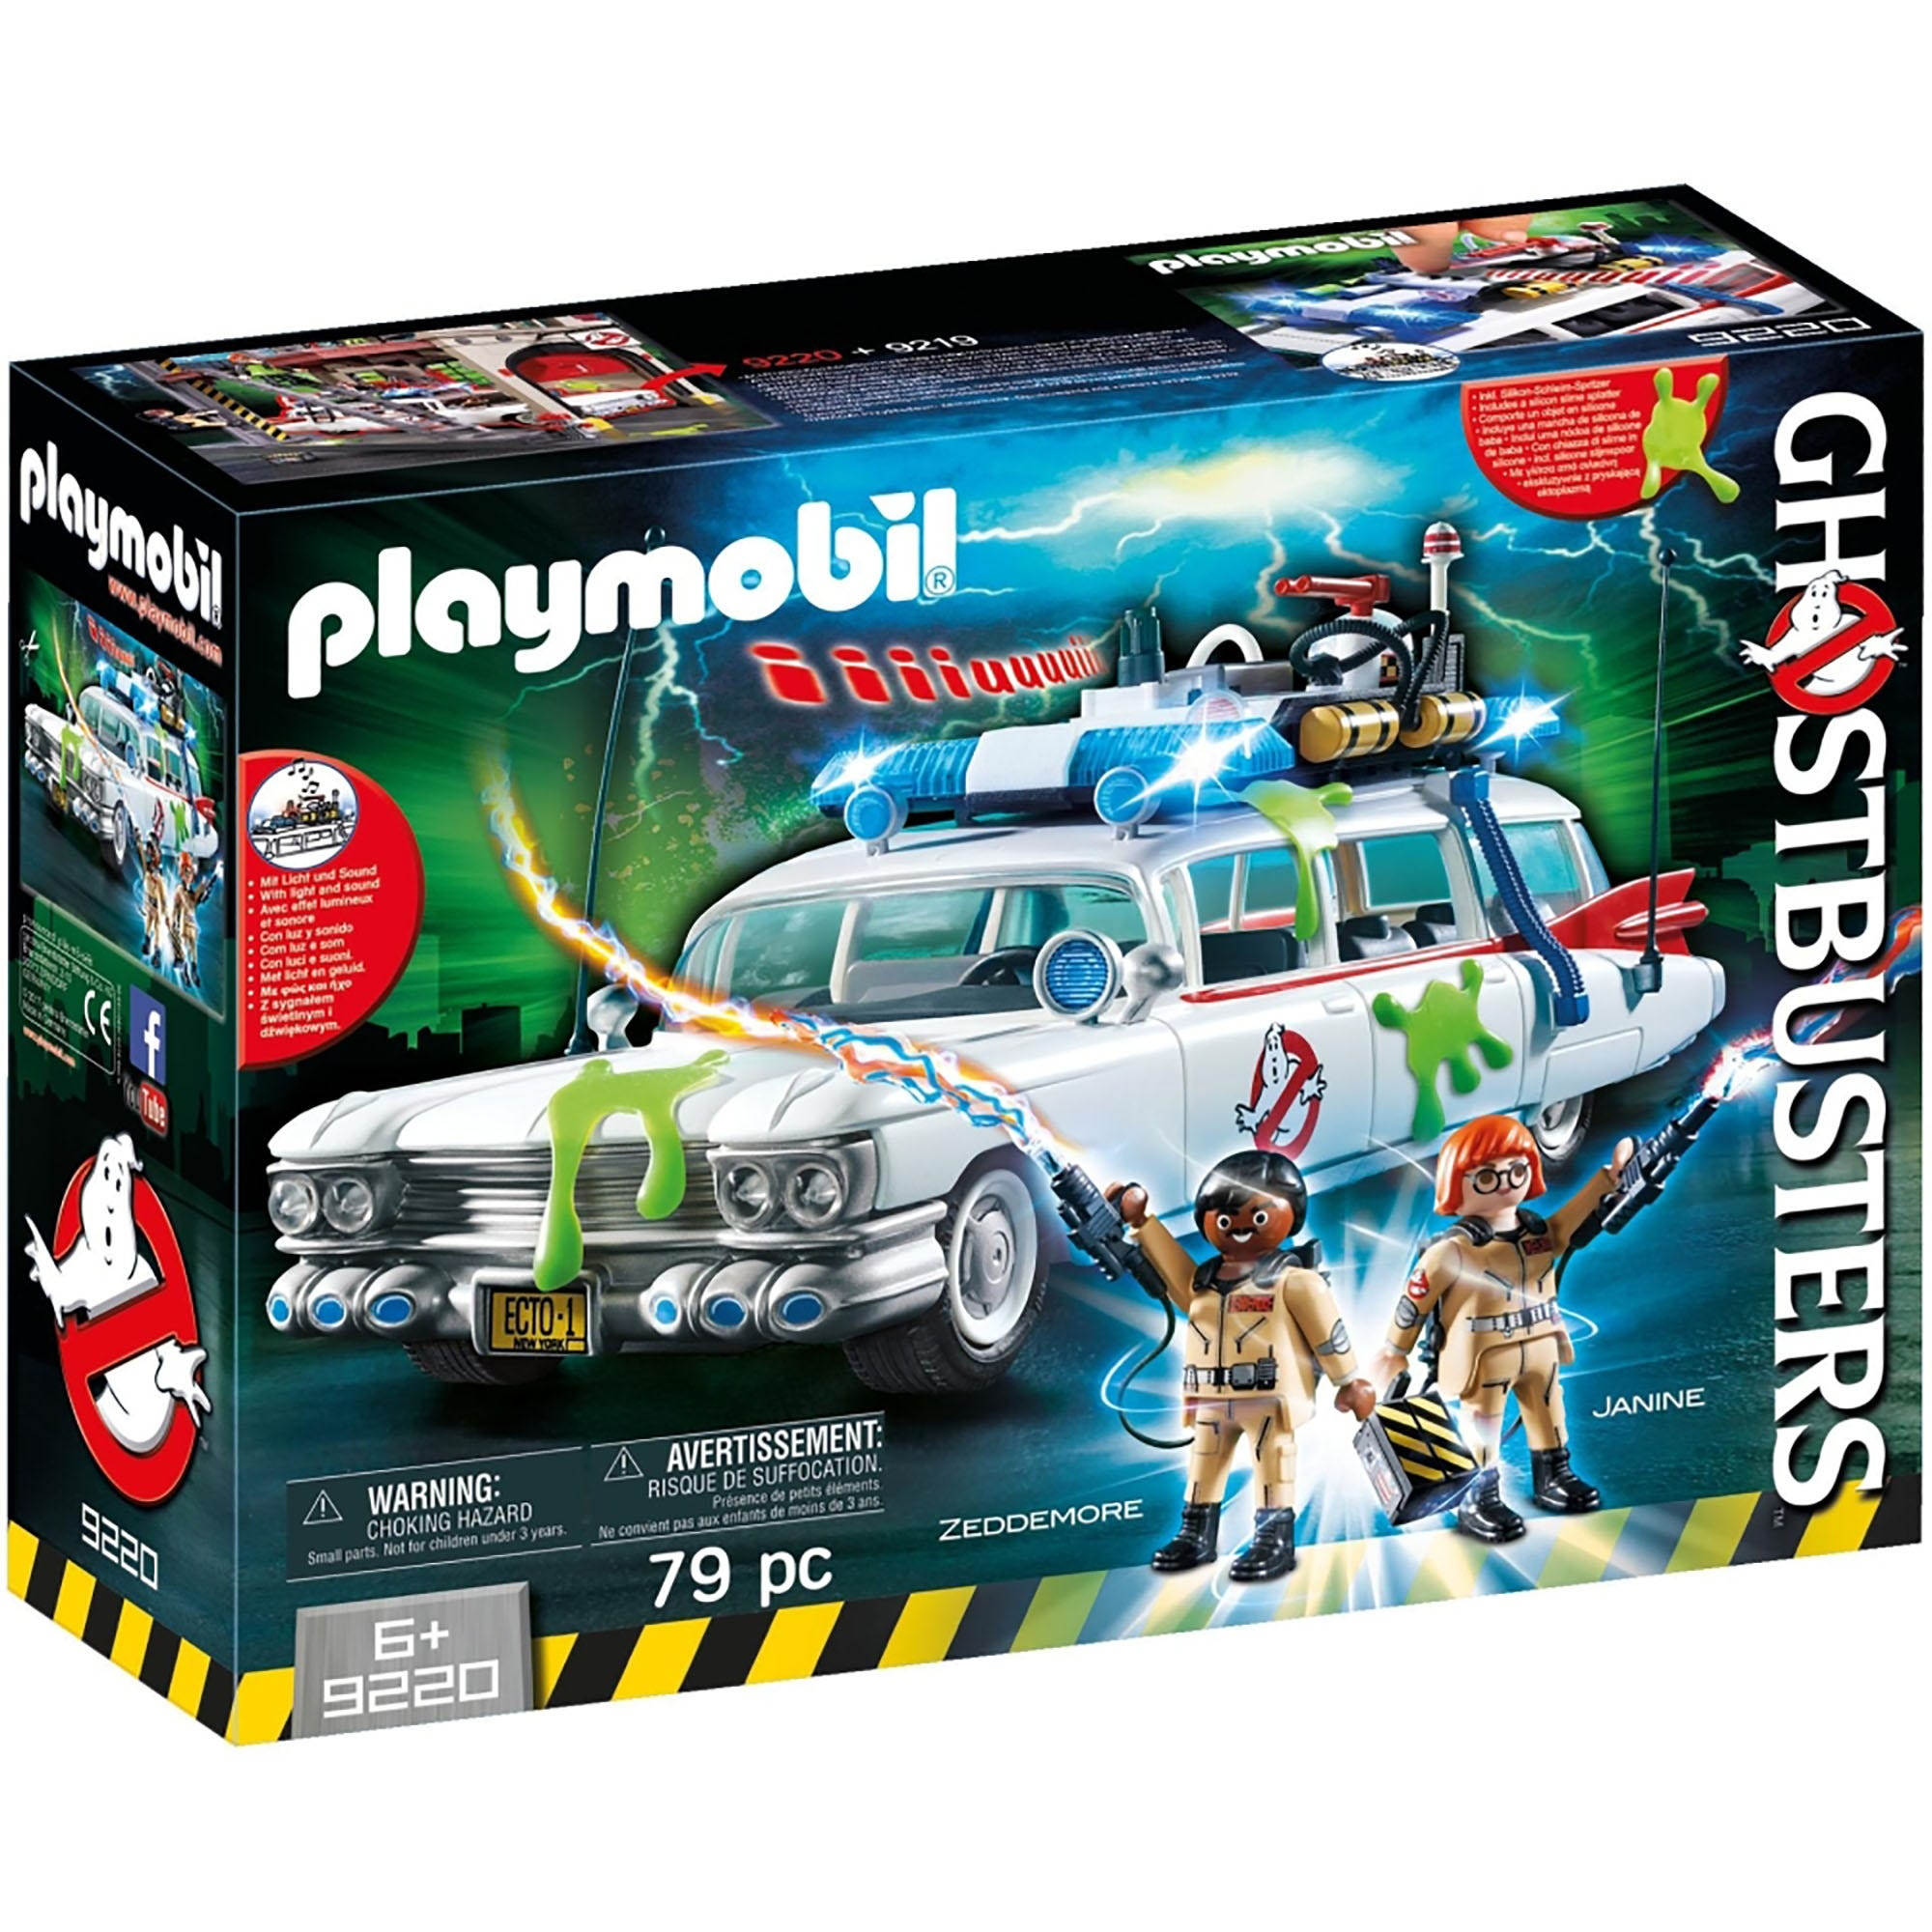 Playmobil Ghostbusters Ecto 1 With Light & Sound 9220